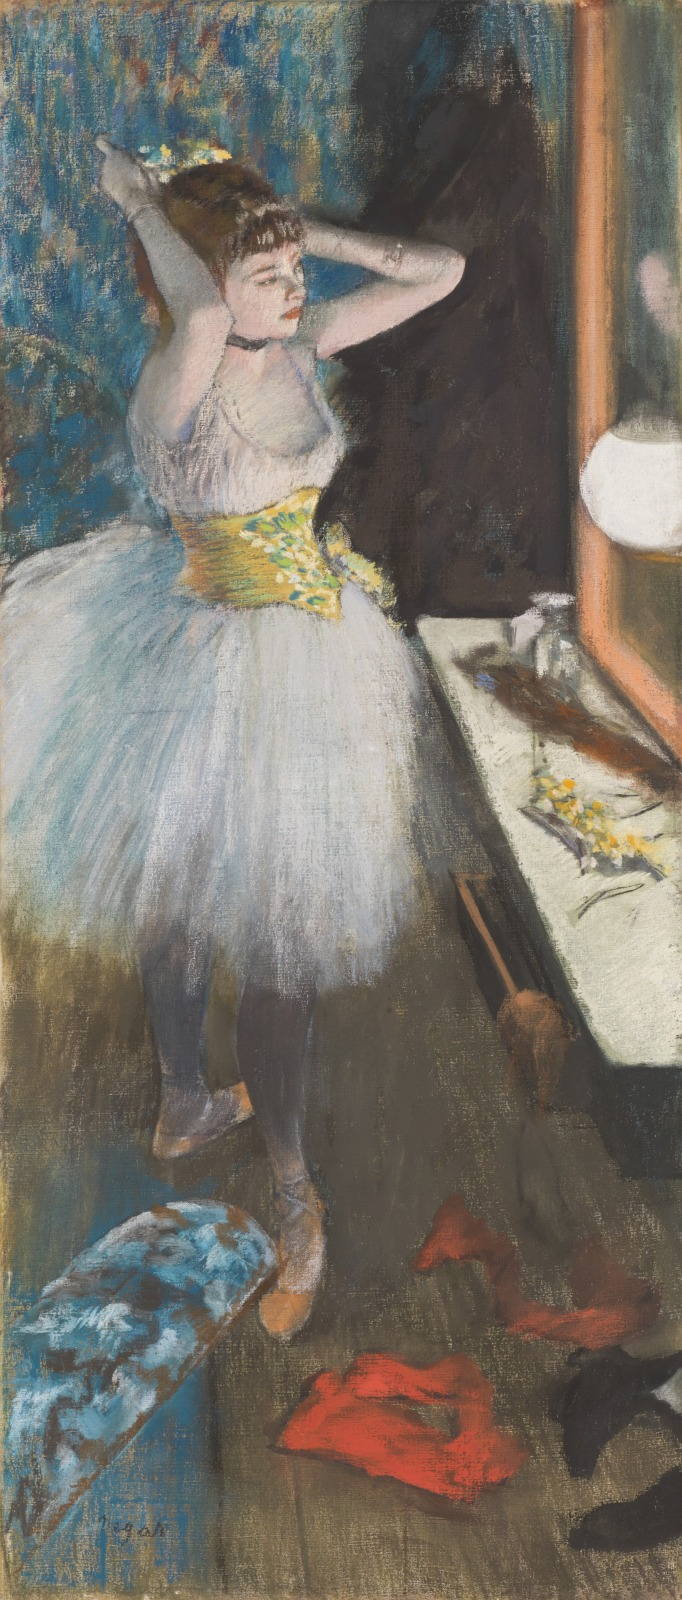 Dancer in Her Dressing Room (Danseuse dans sa loge)